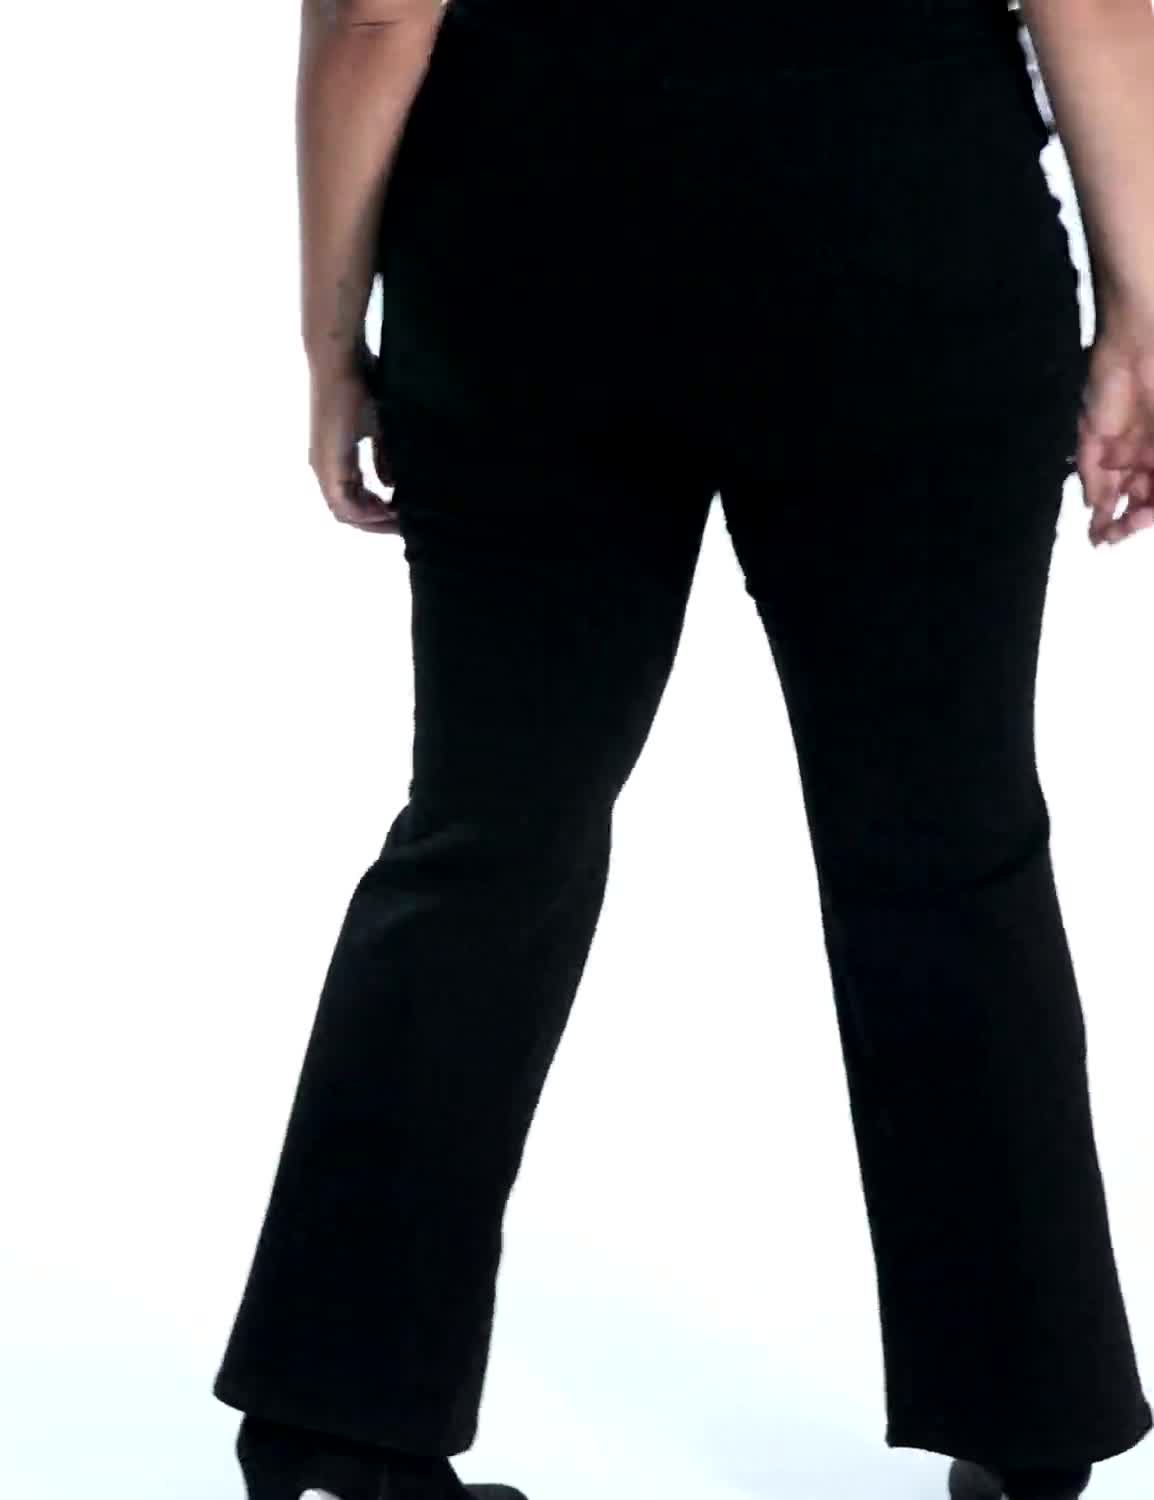 Plus Westport Signature 5 Pocket Bootcut Jean - Video